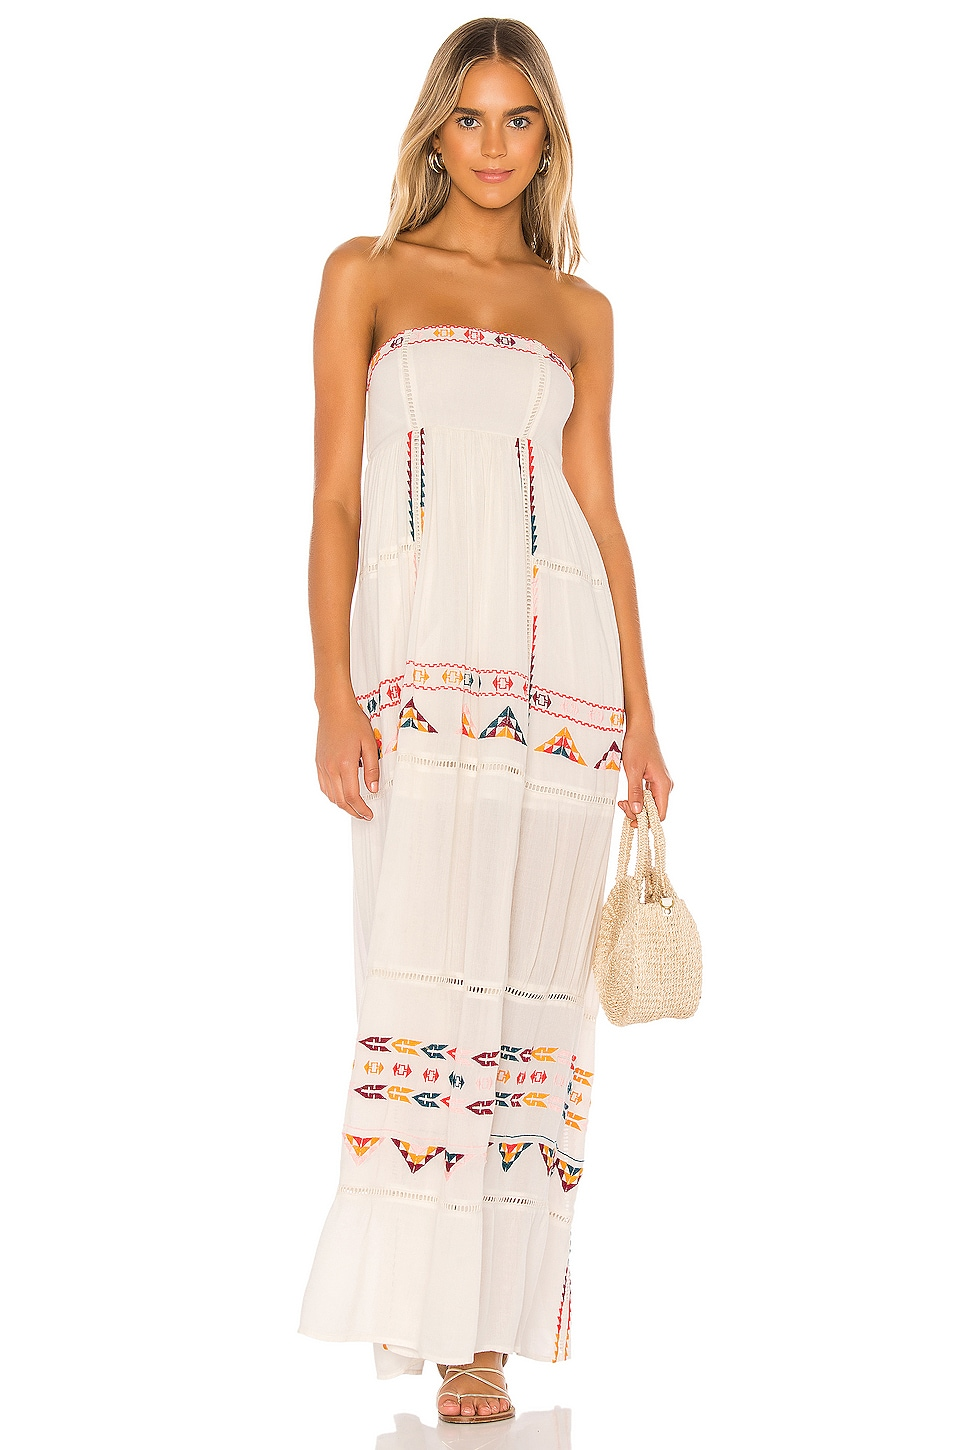 Tularosa Felicity Embroidered Dress in White